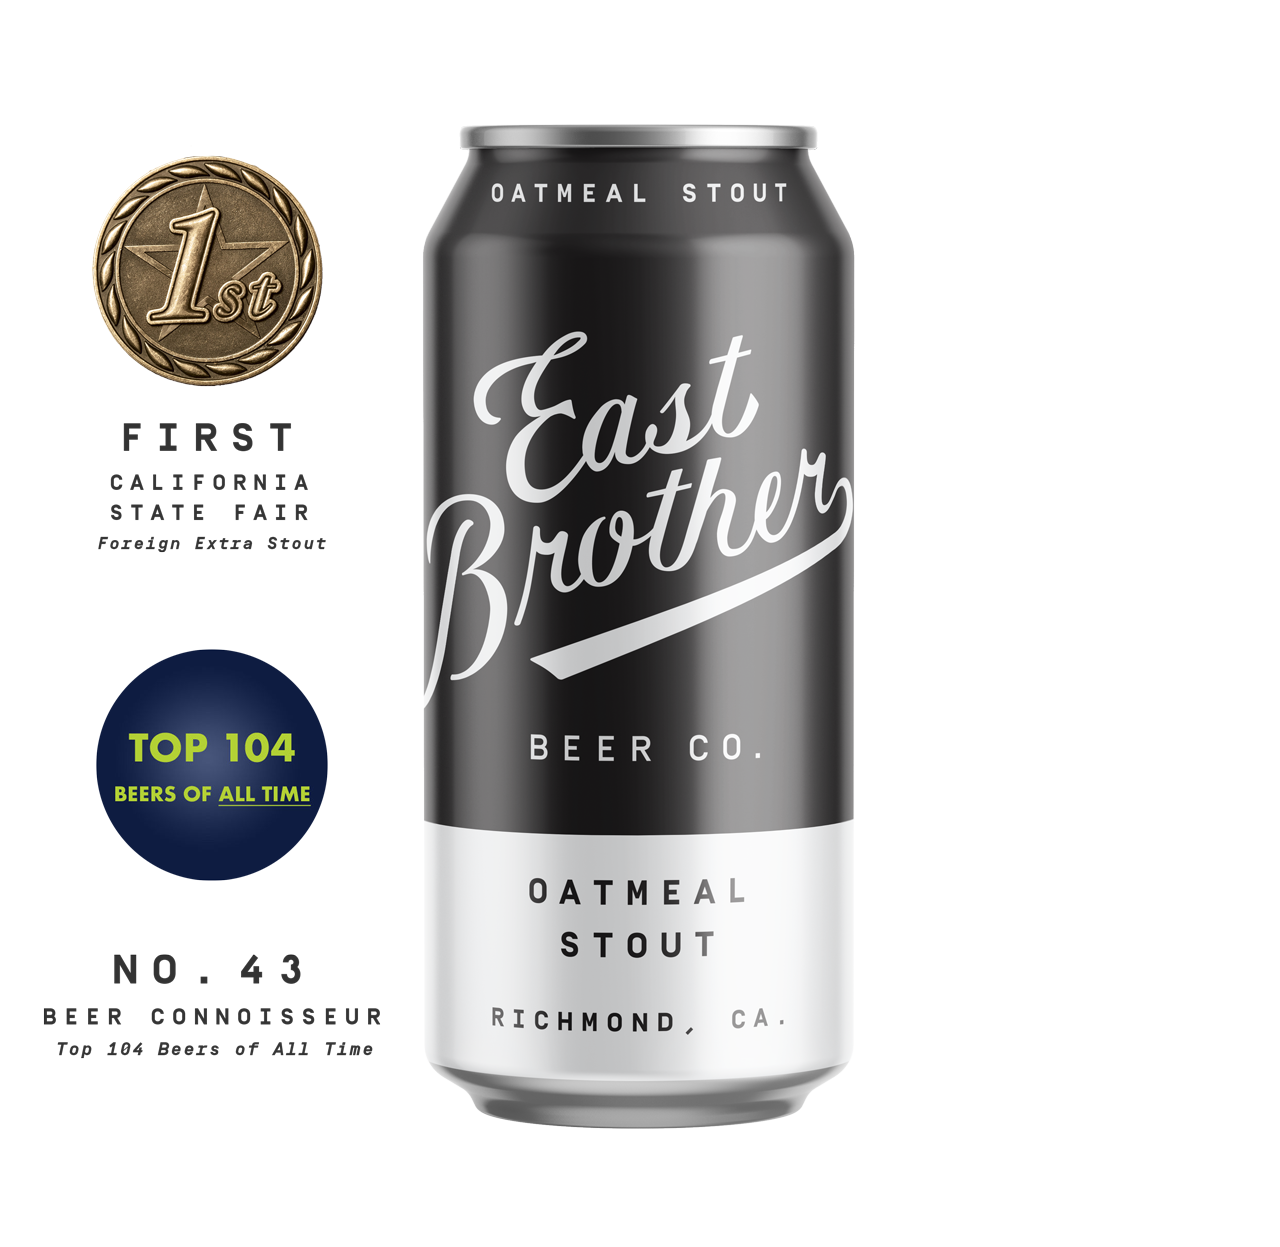 OATMEAL STOUT - English-inspired with notes of rich milk chocolate, dark fruit — soft, comforting finish.5.4% ABV.